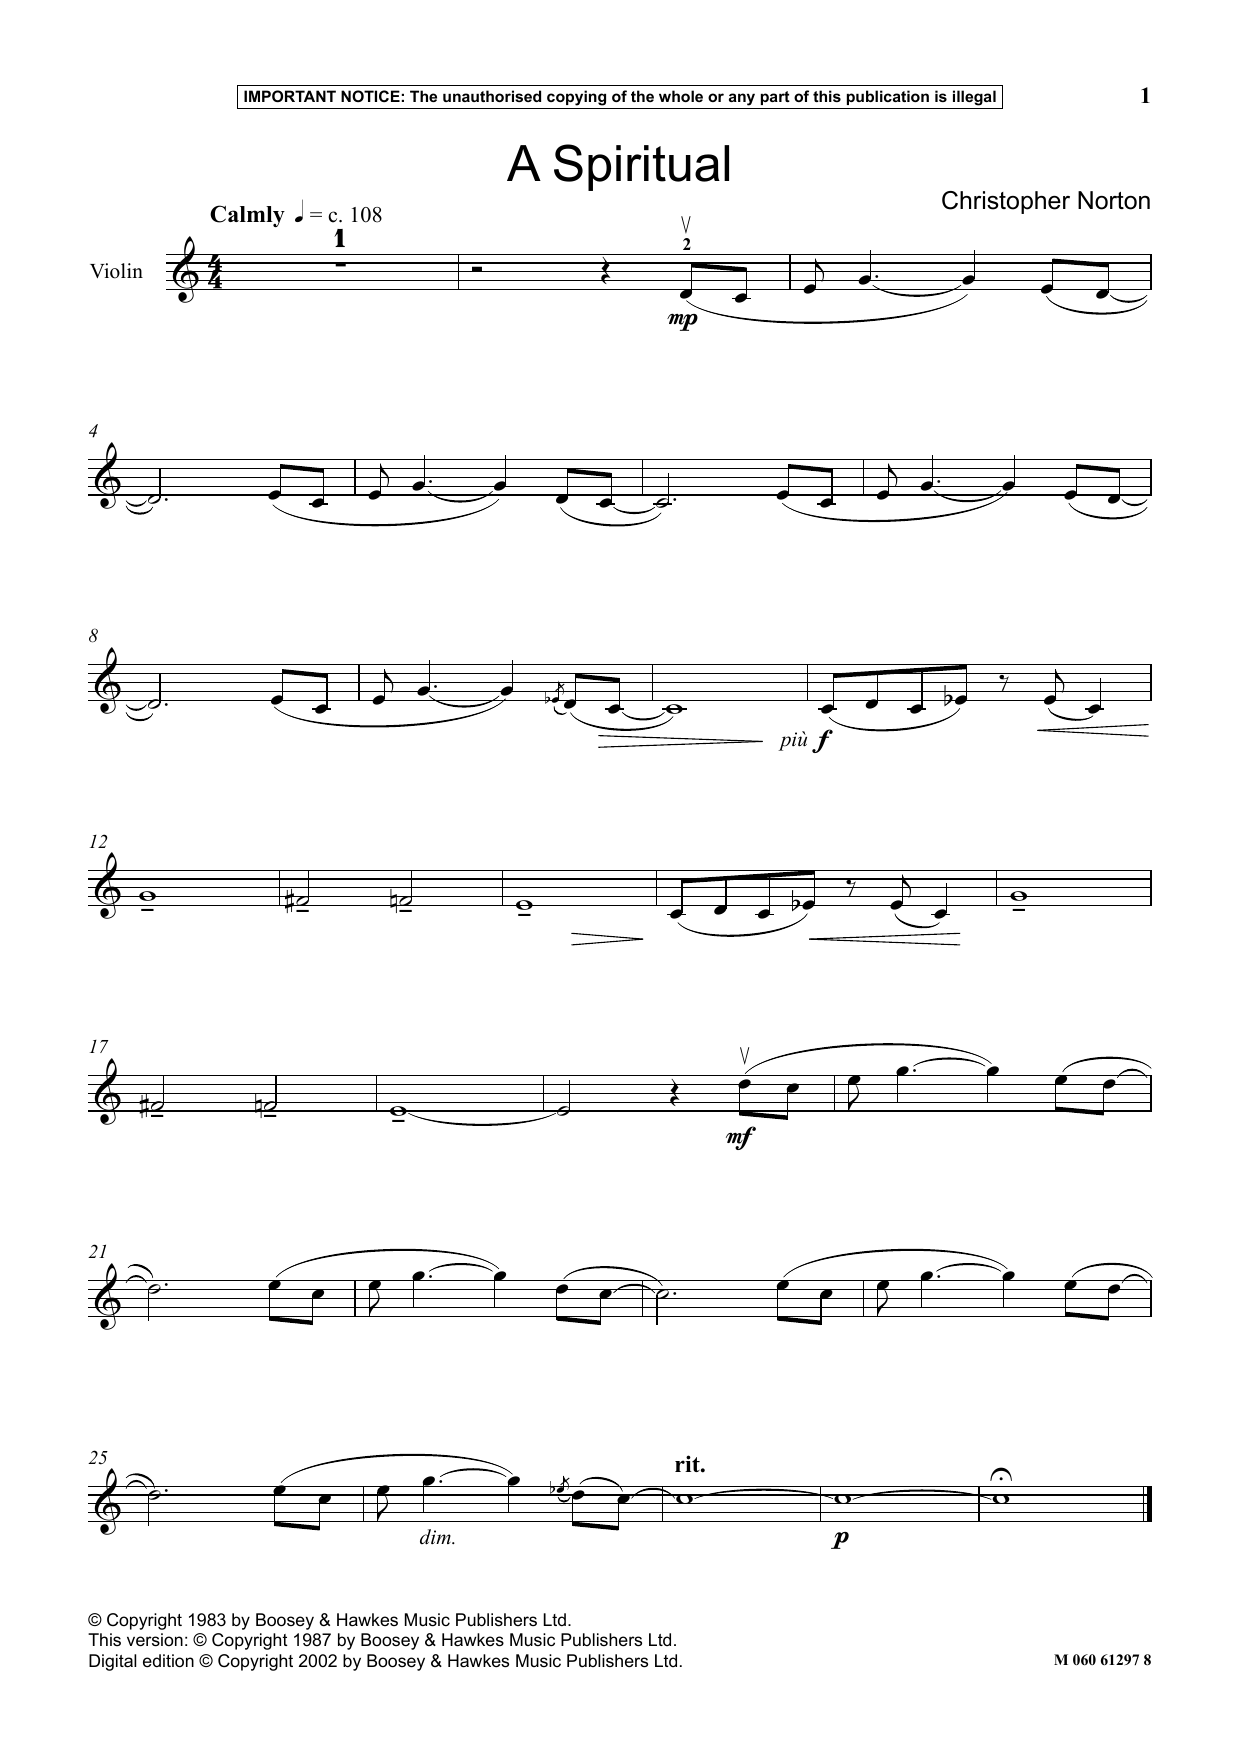 Download Christopher Norton 'A Spiritual' Digital Sheet Music Notes & Chords and start playing in minutes